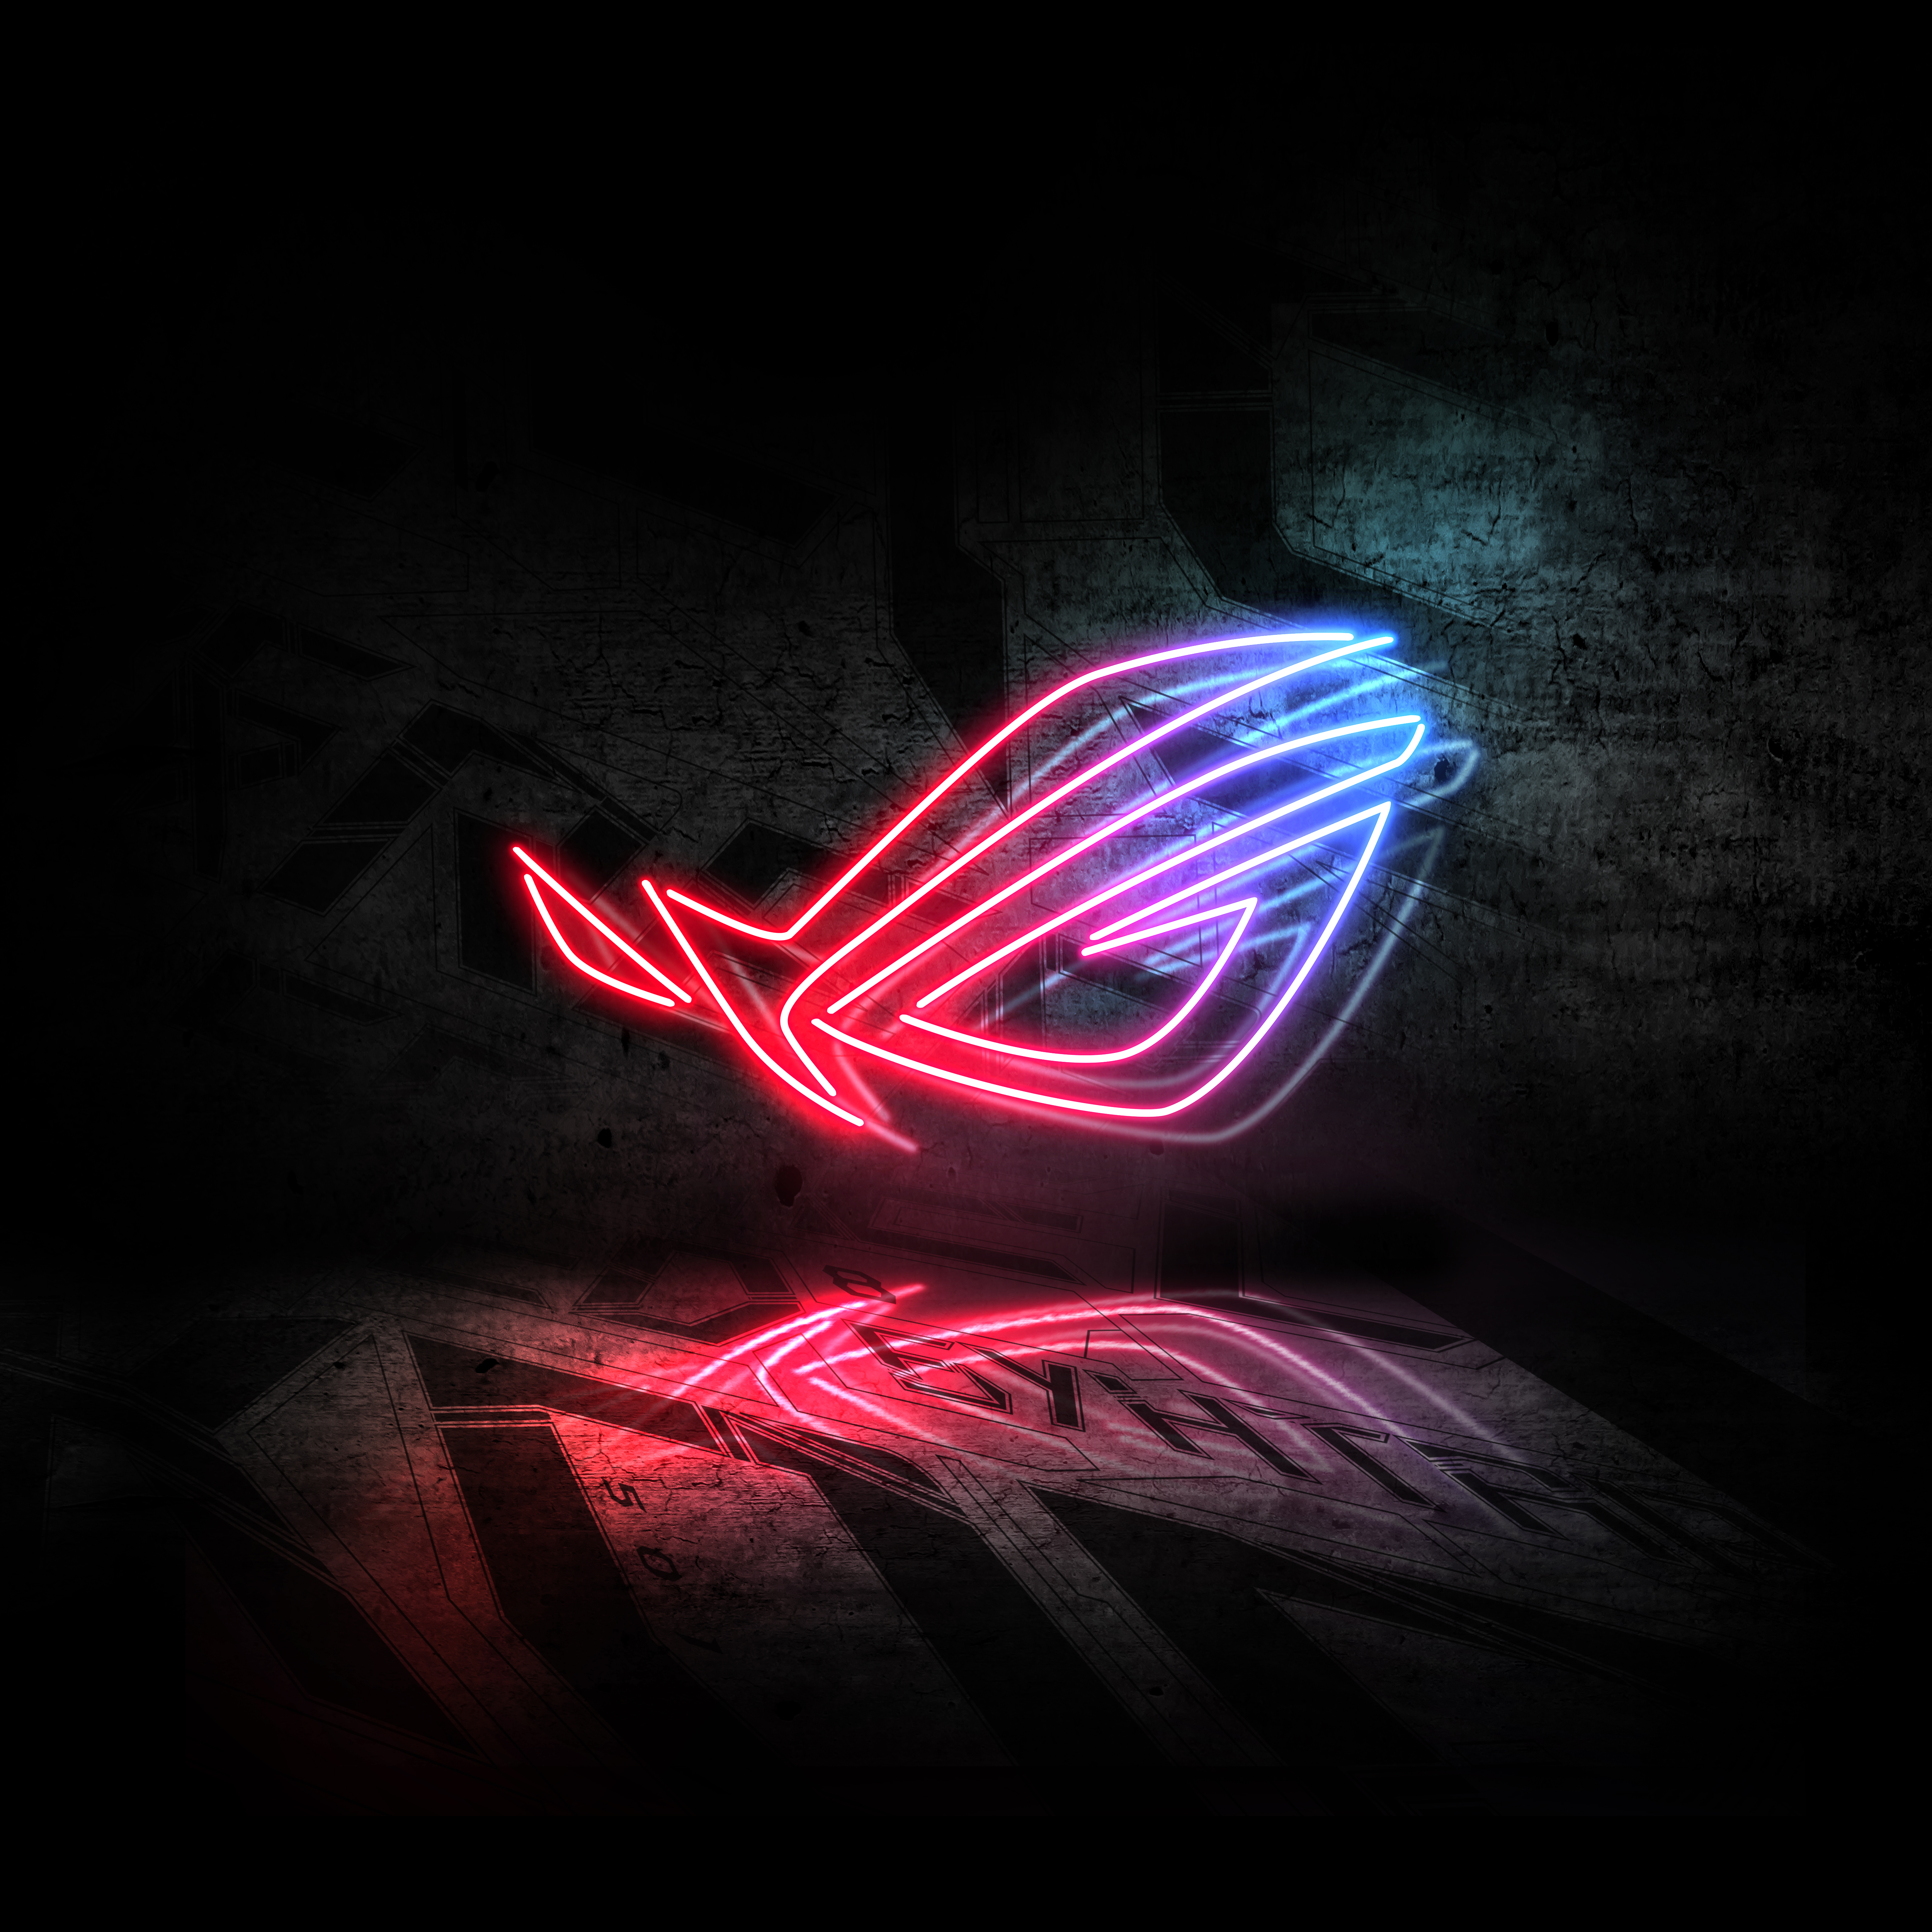 Wallpapers Games: Rog Neon Logo 5k, HD Computer, 4k Wallpapers, Images